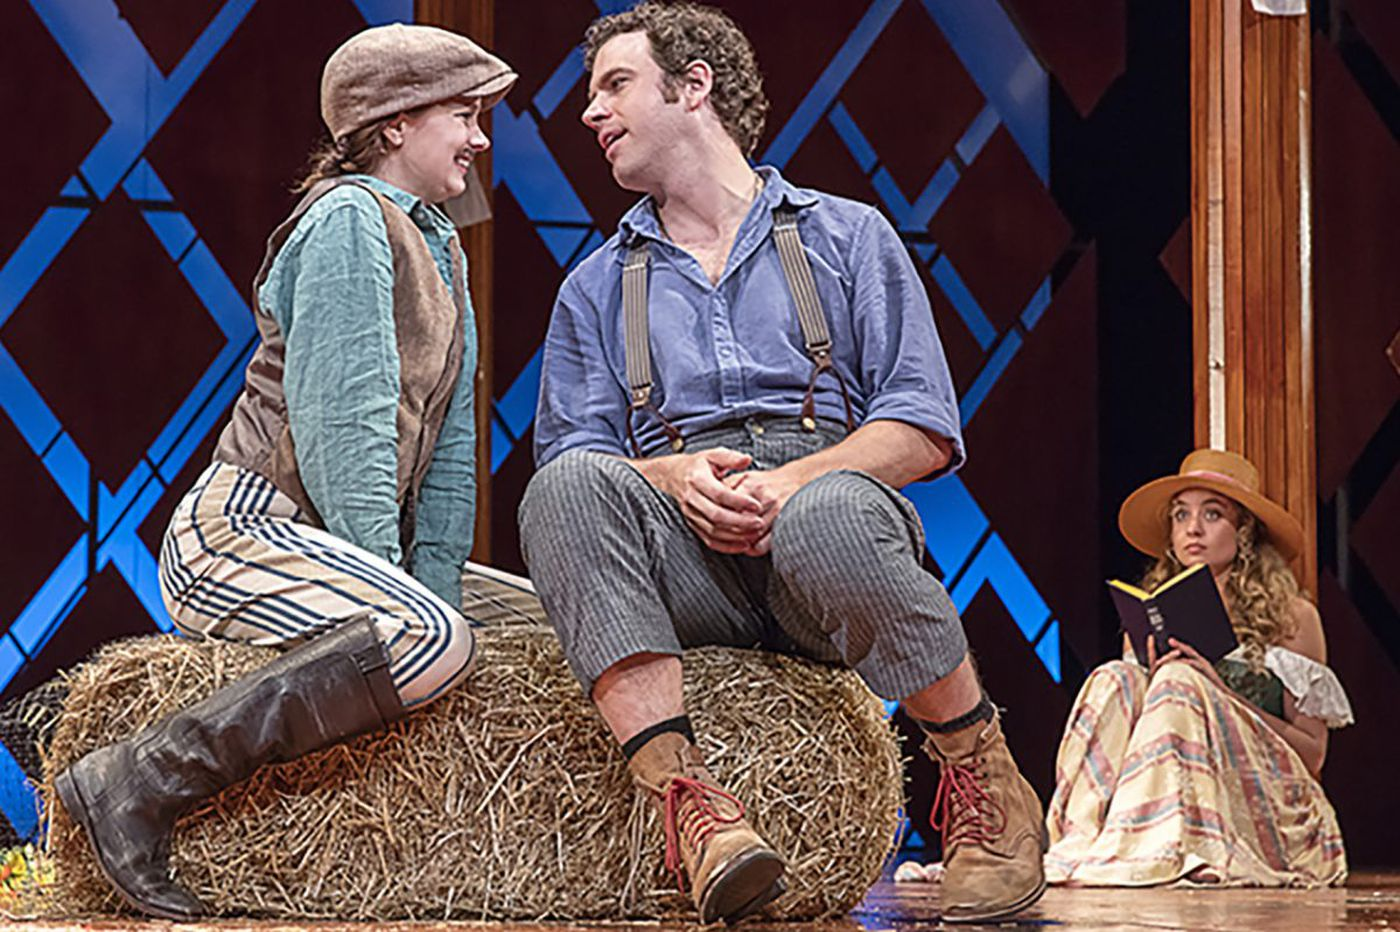 A darker 'As You Like It' from the Pennsylvania Shakespeare Festival